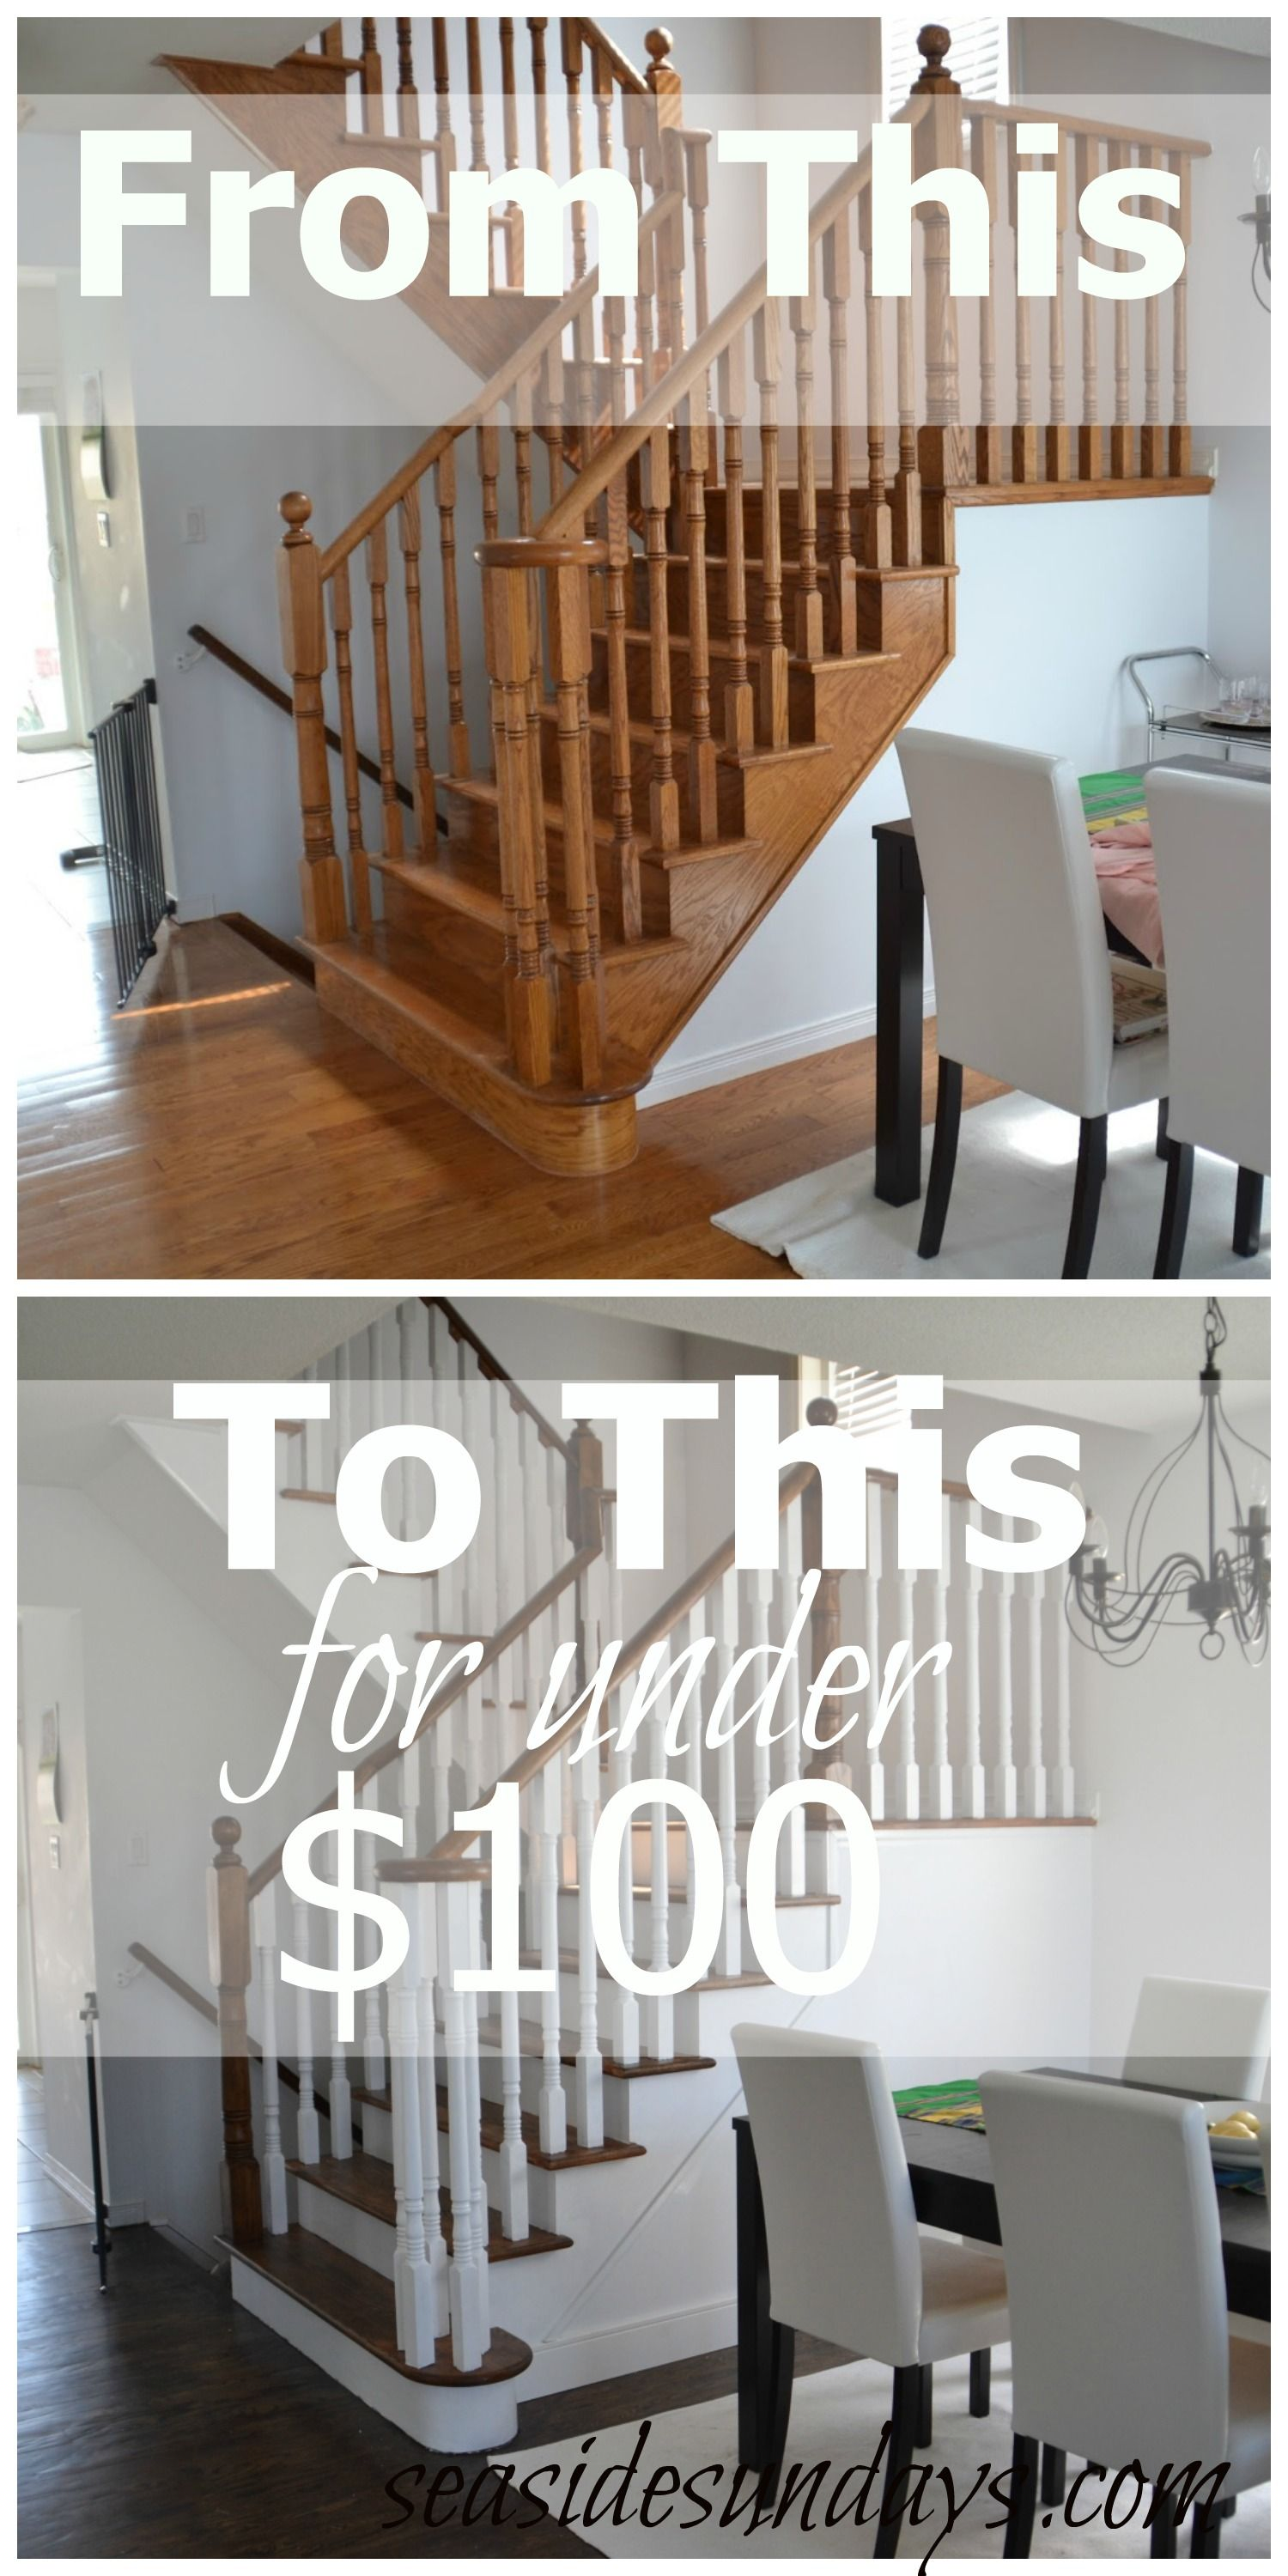 Save Money And Refinish Your Stairs With This How To Guide. Great For  Beginners Who Want To Save Money And Revamp Their Builder Staircase.